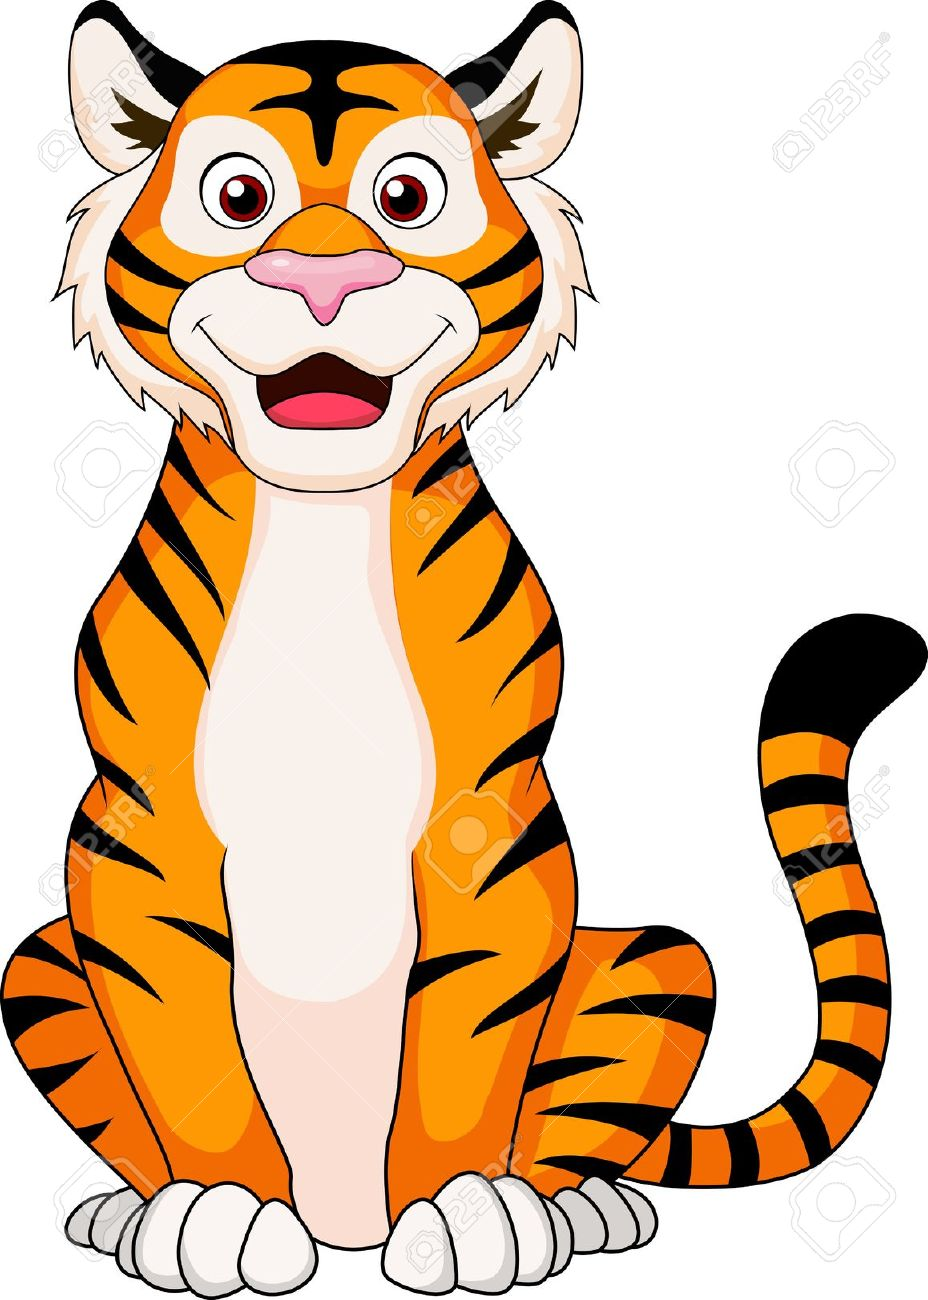 928x1300 Tiger clipart cute pencil and in color tiger